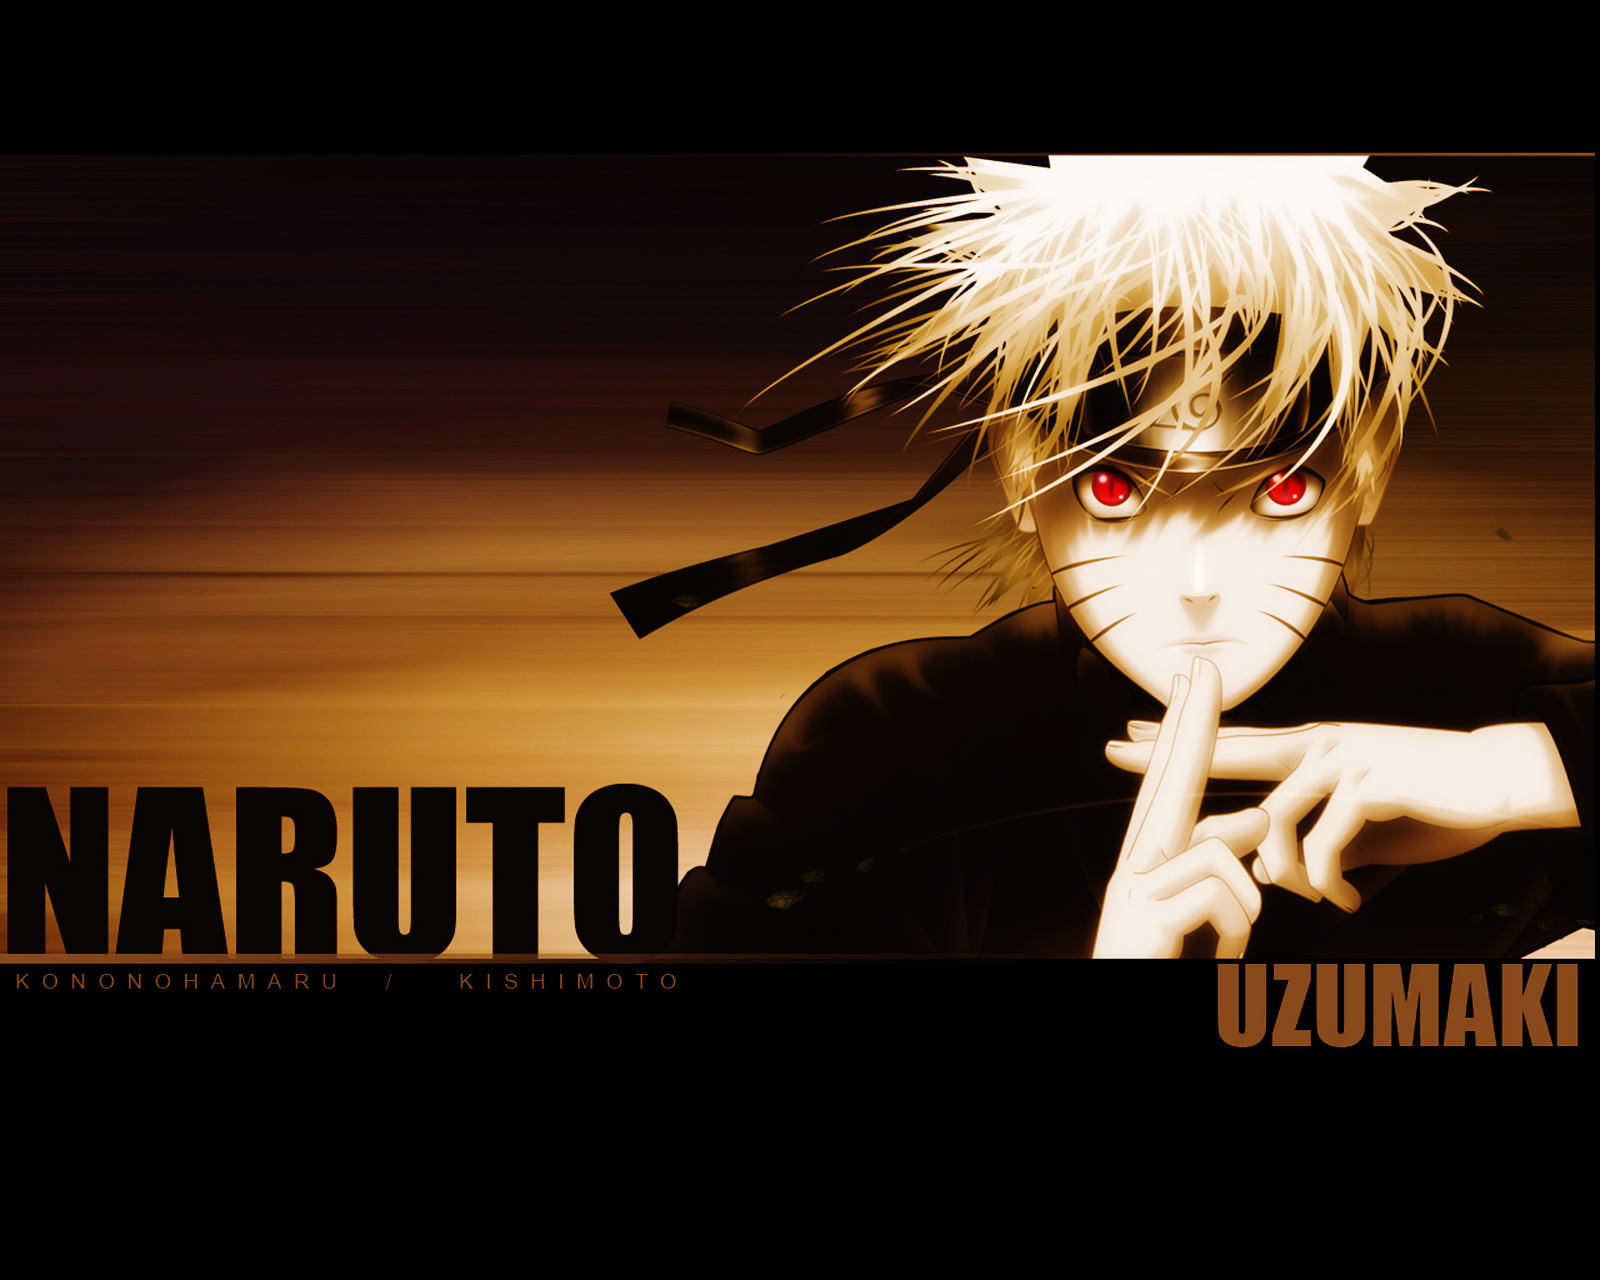 Naruto:Shippuden Naruto Uzumaki Wallpapers ~ Cartoon Wallpapers